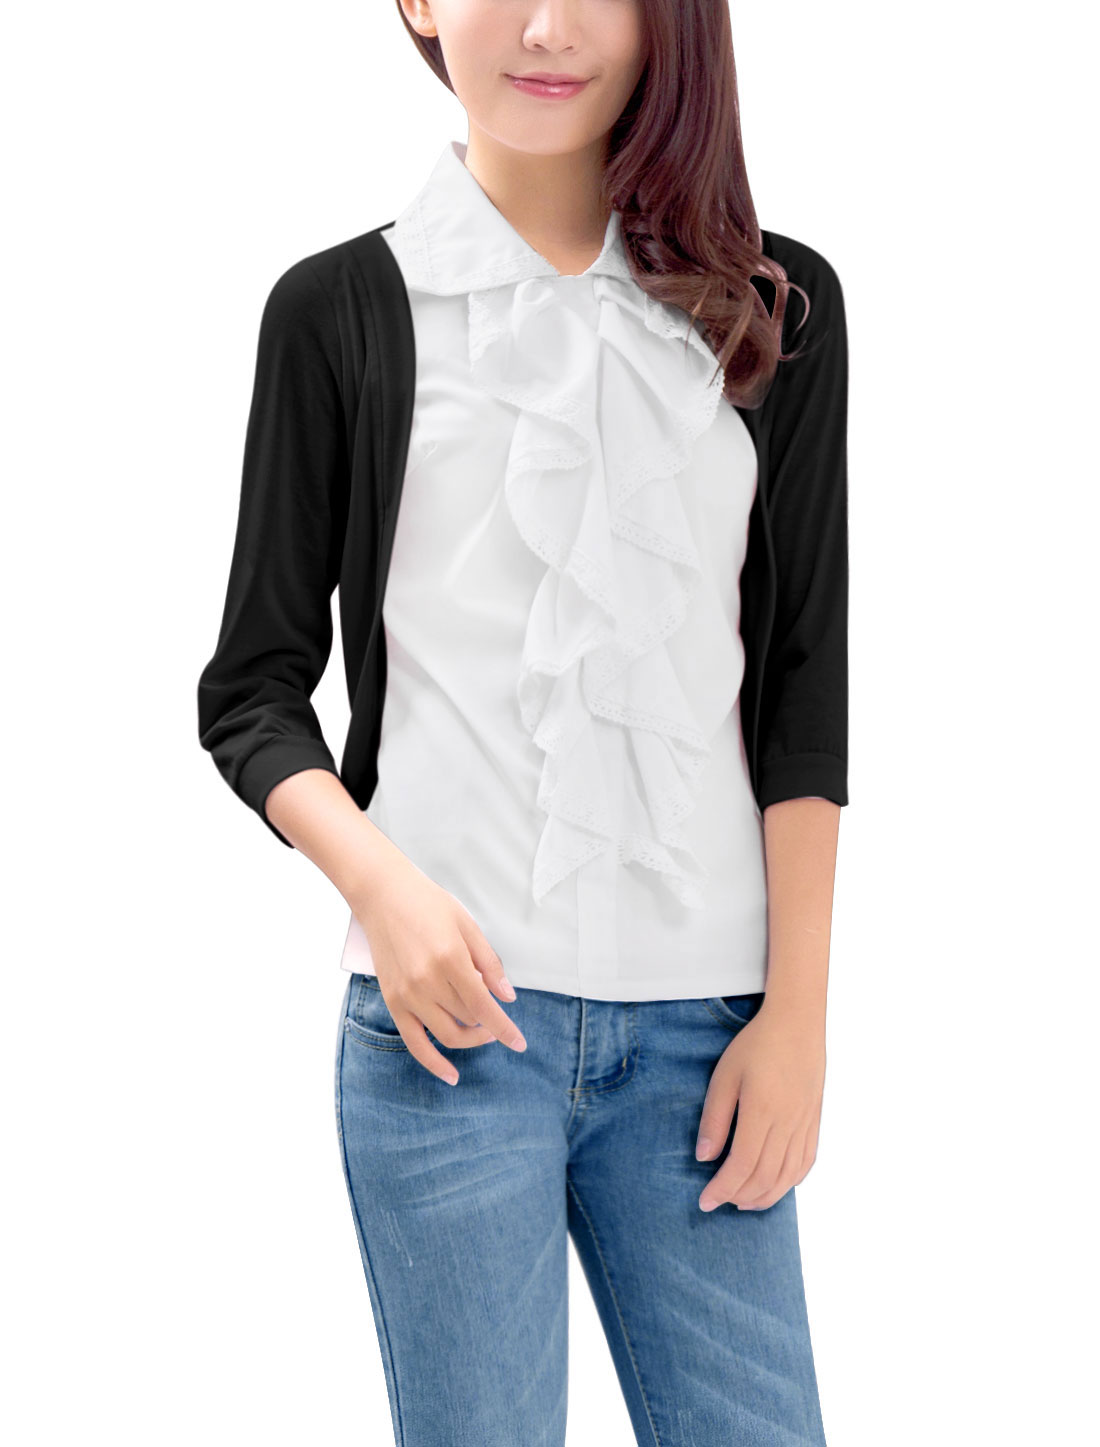 Ladies New Fashion Two-Tone Ruffled Front Black White Top Shirt L